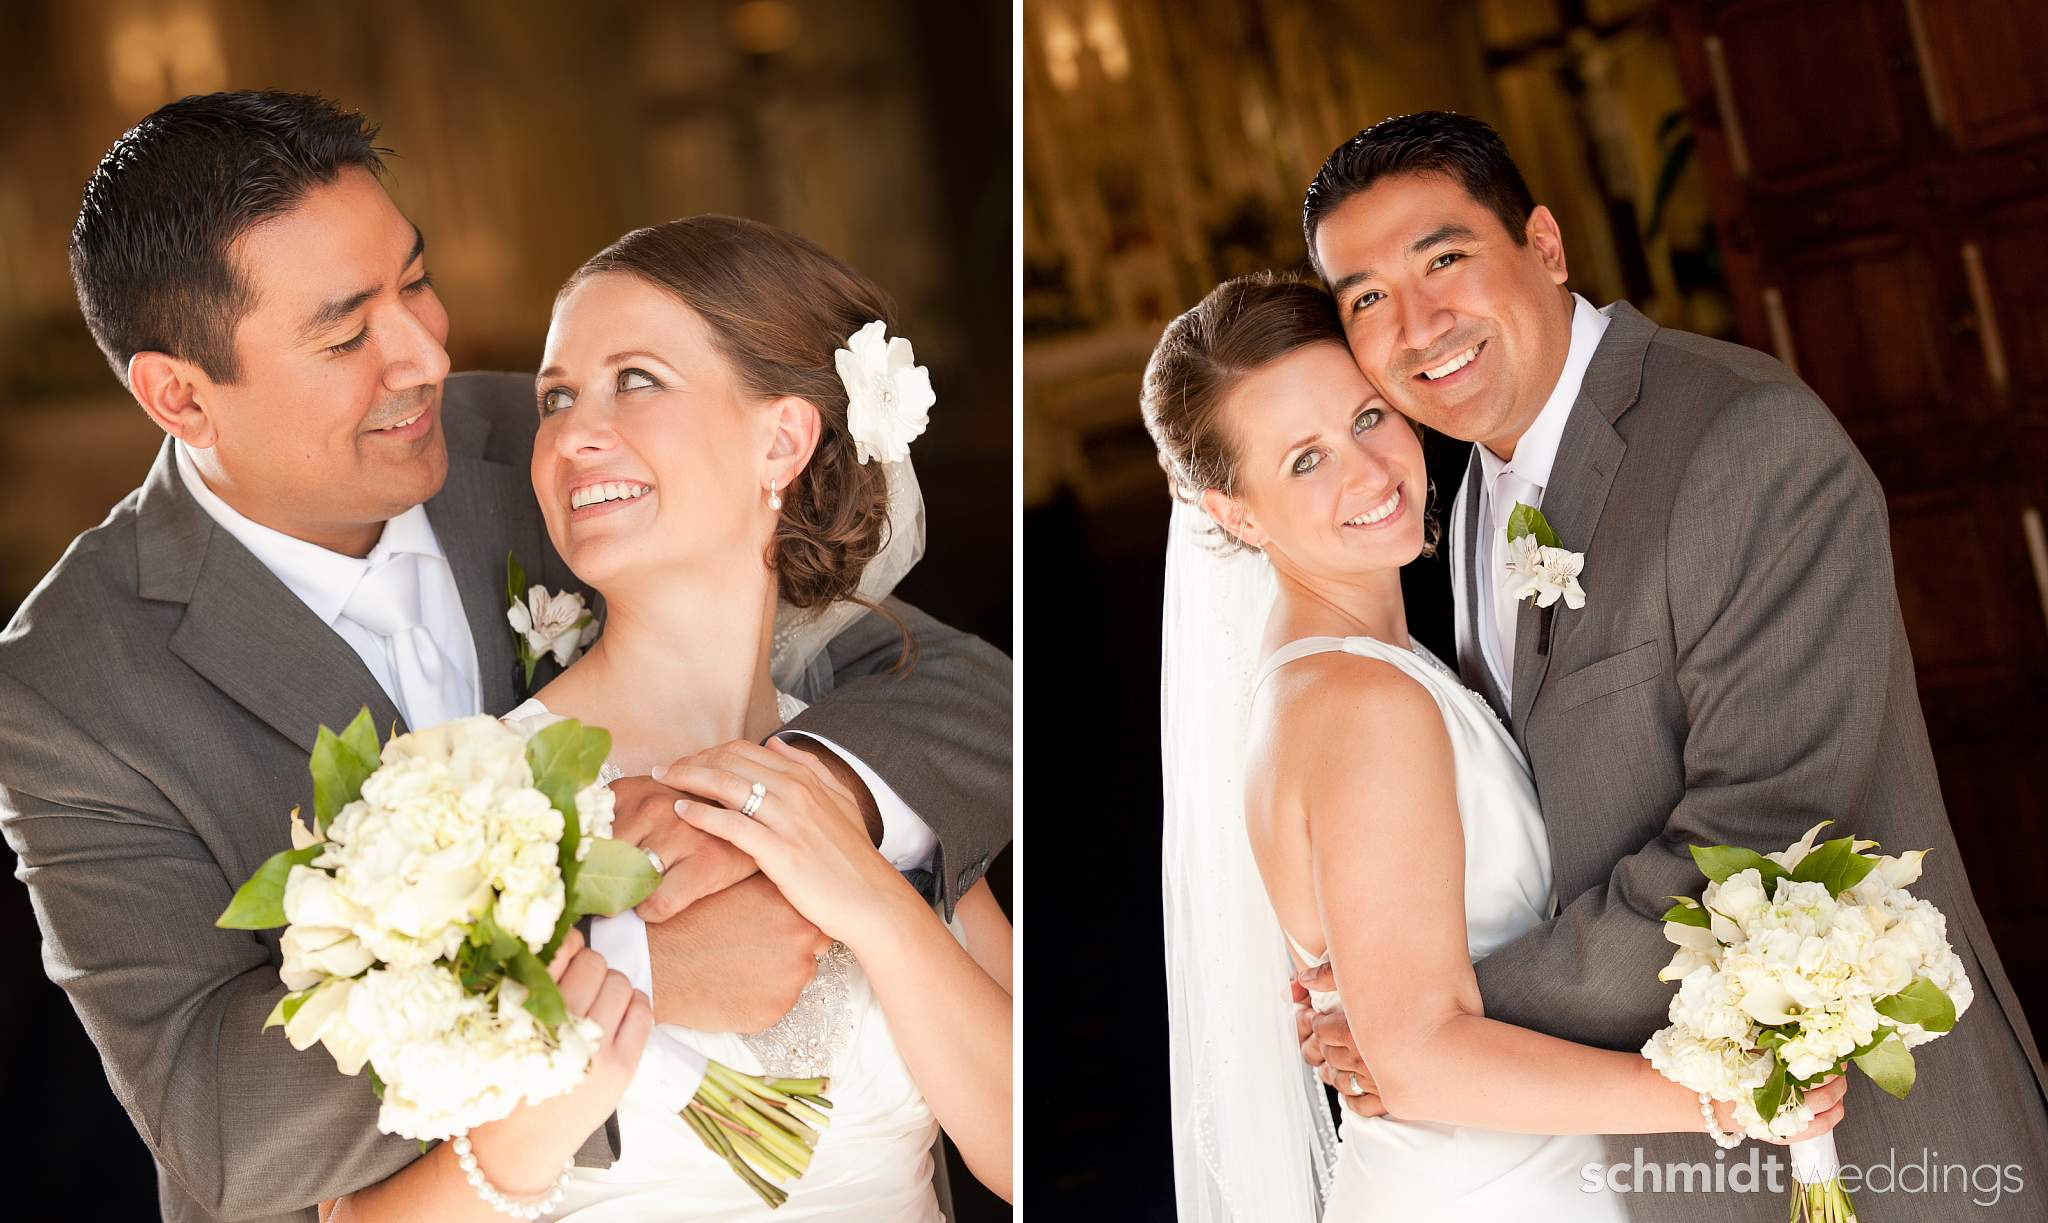 Bride and groom portraits by Tom Schmidt Chicago